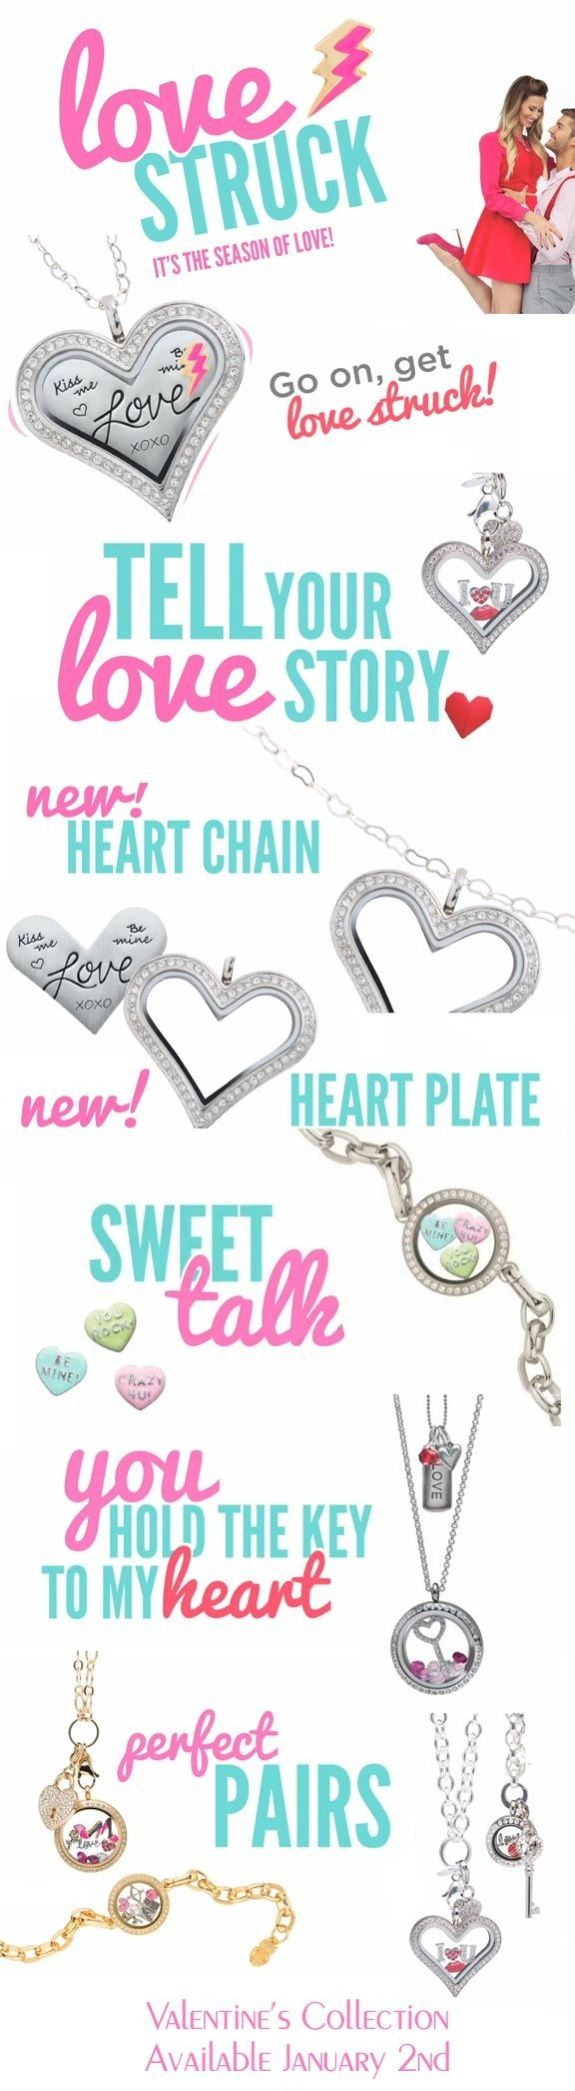 517 best origami owl images on pinterest origami owl jewelry new origami owl valentines day collection 2014 available january 2nd order direct scottyhayes jeuxipadfo Images